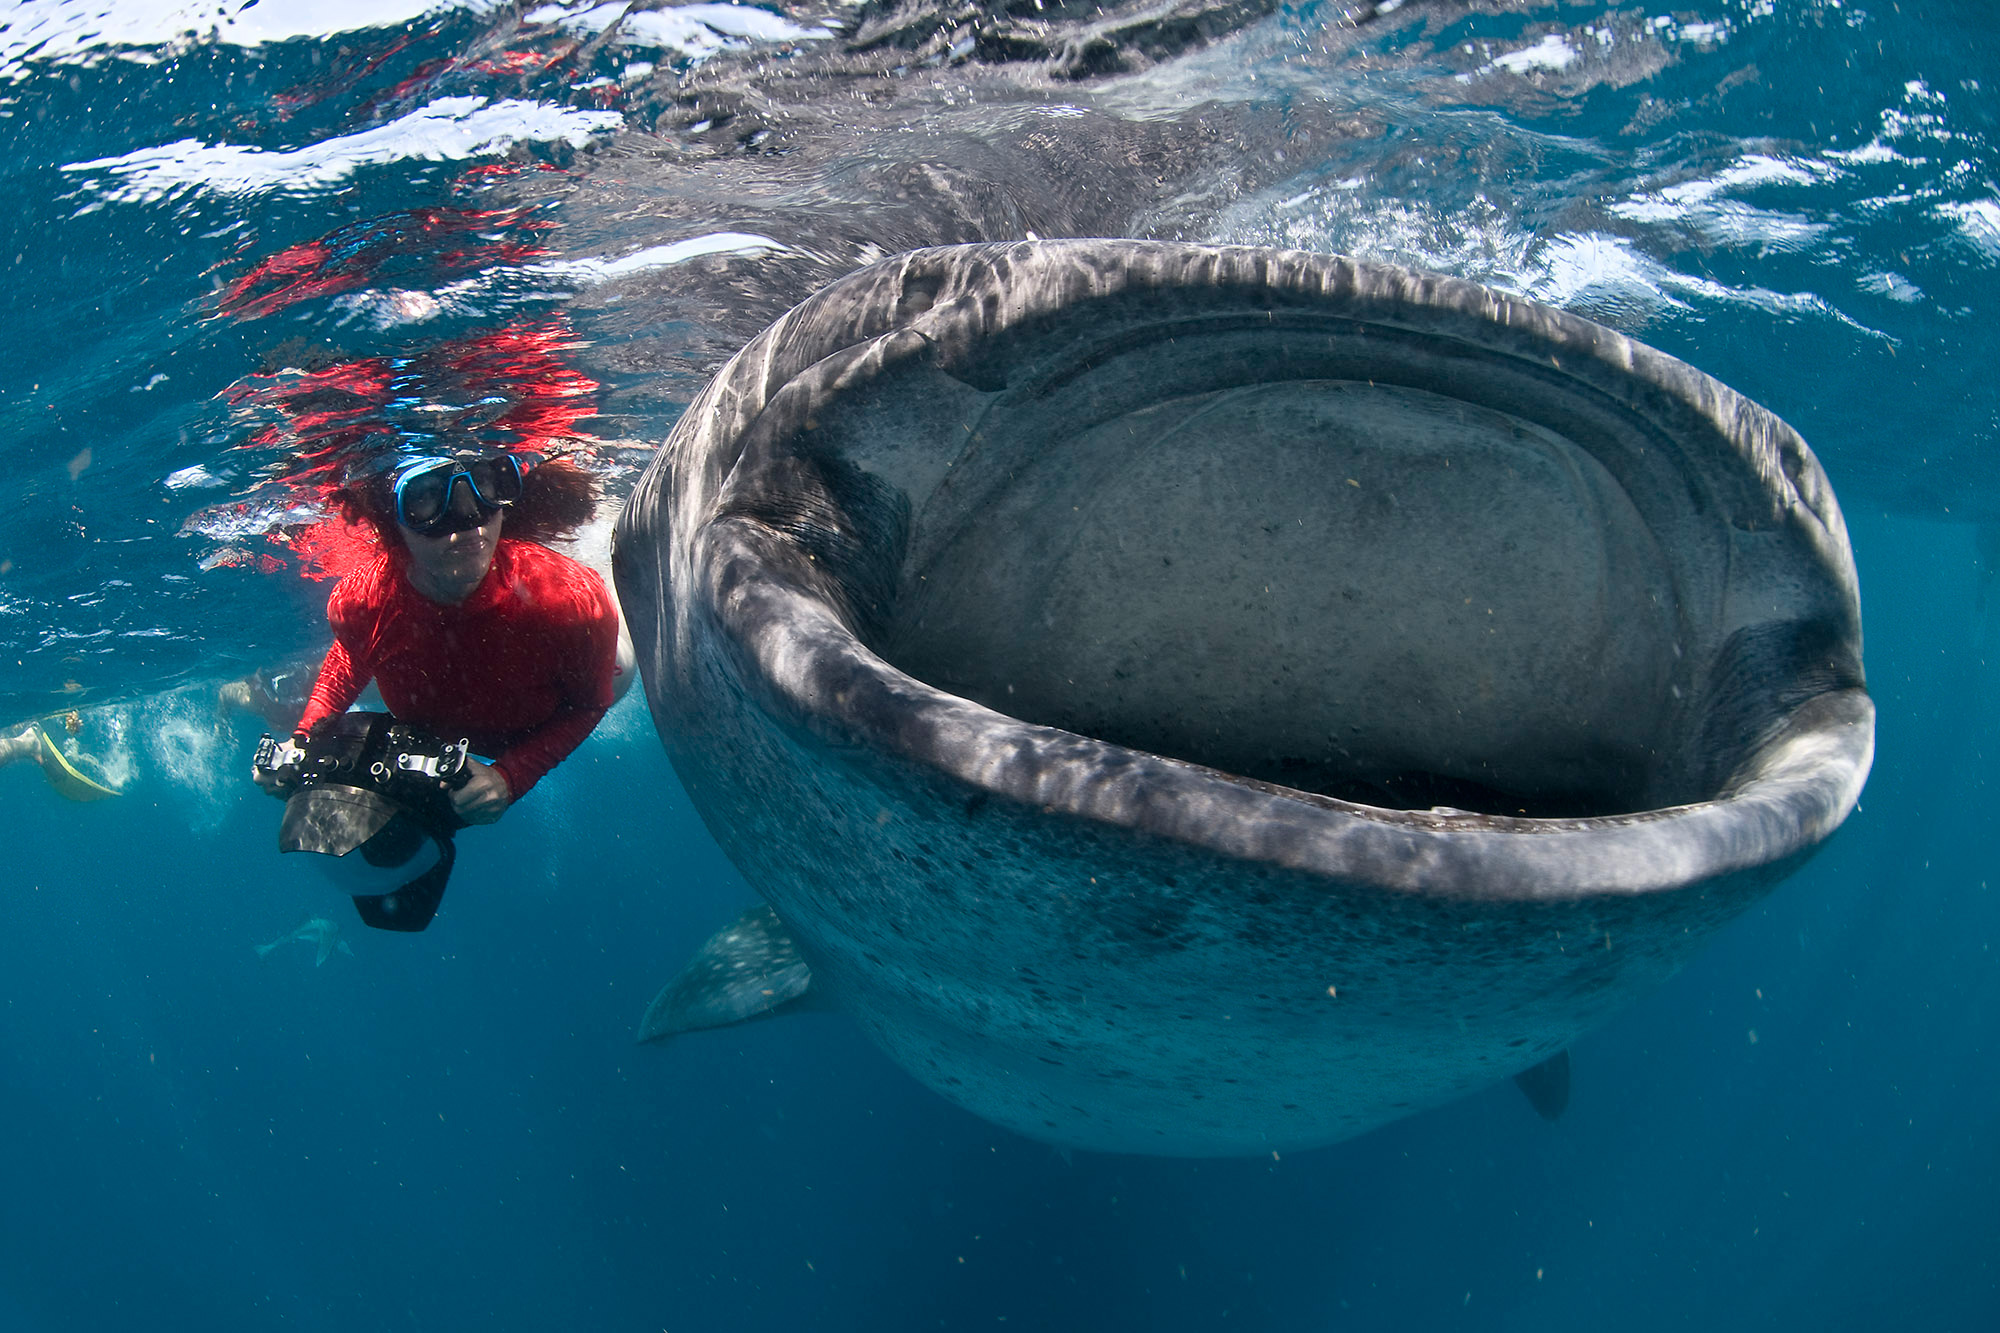 Lesley Rochat, the shark warrior photographing a whale shark